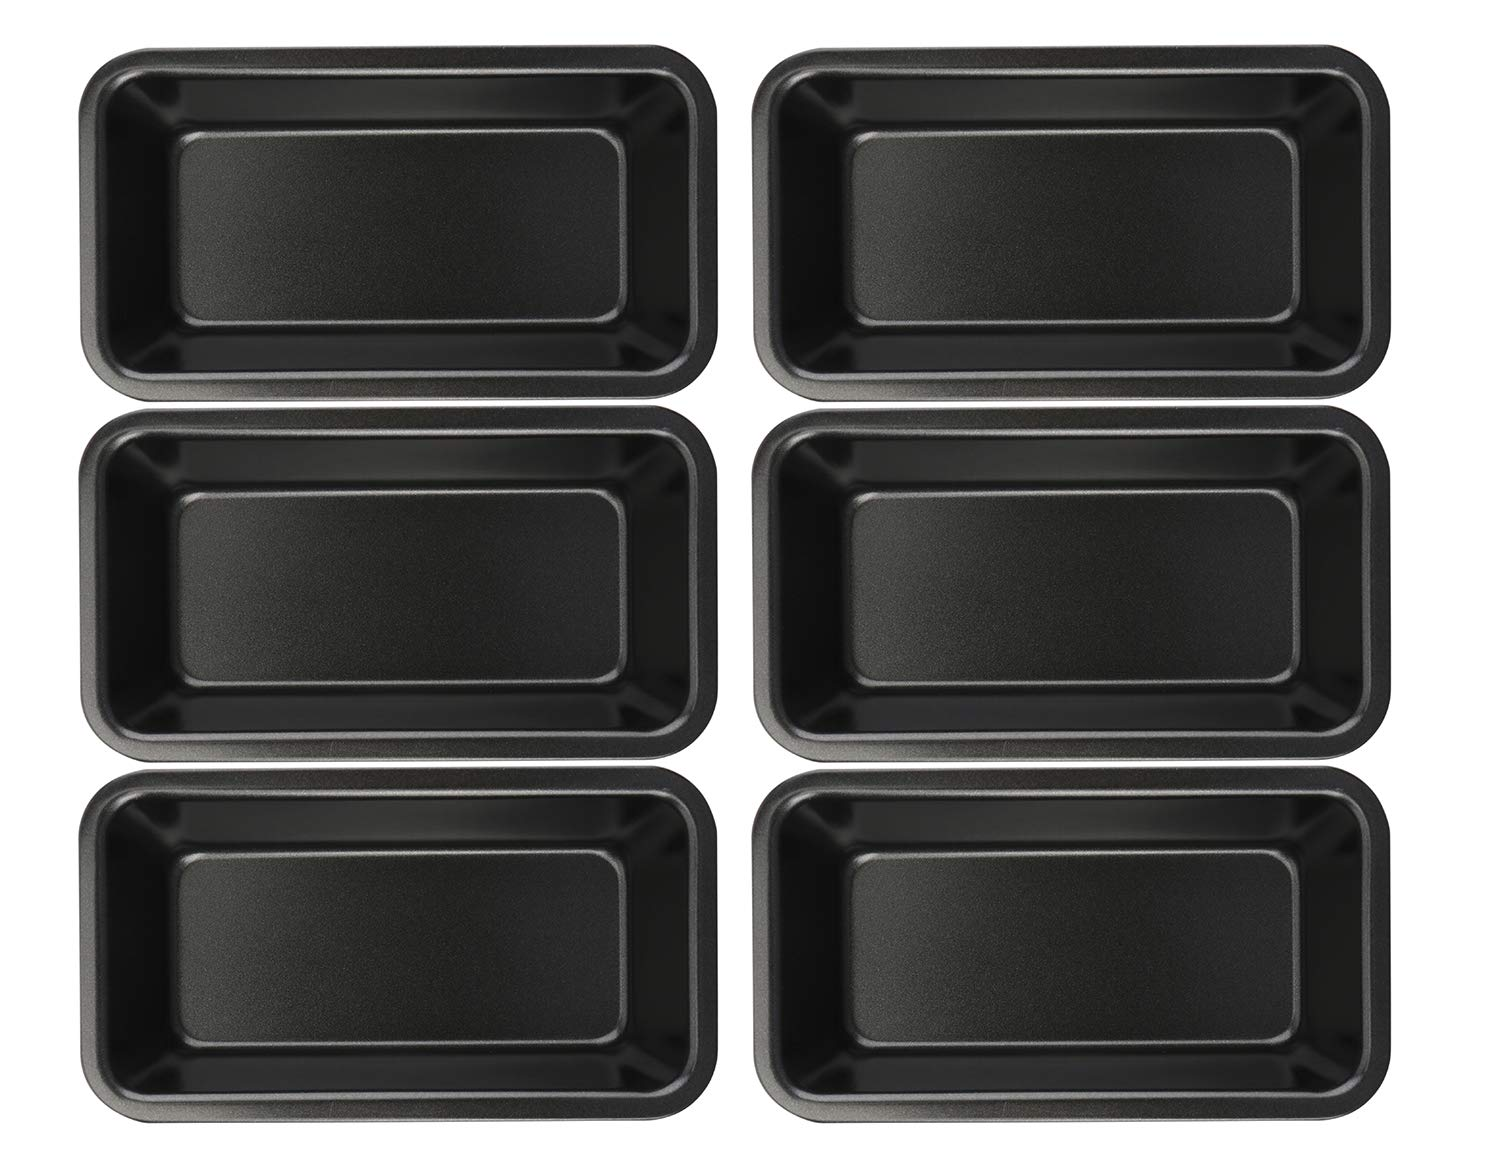 Lawei 6 Piece Non-Stick Mini Loaf Pan - 3.5 x 6 Inch Carbon Steel Bread and Toast Mold by Lawei